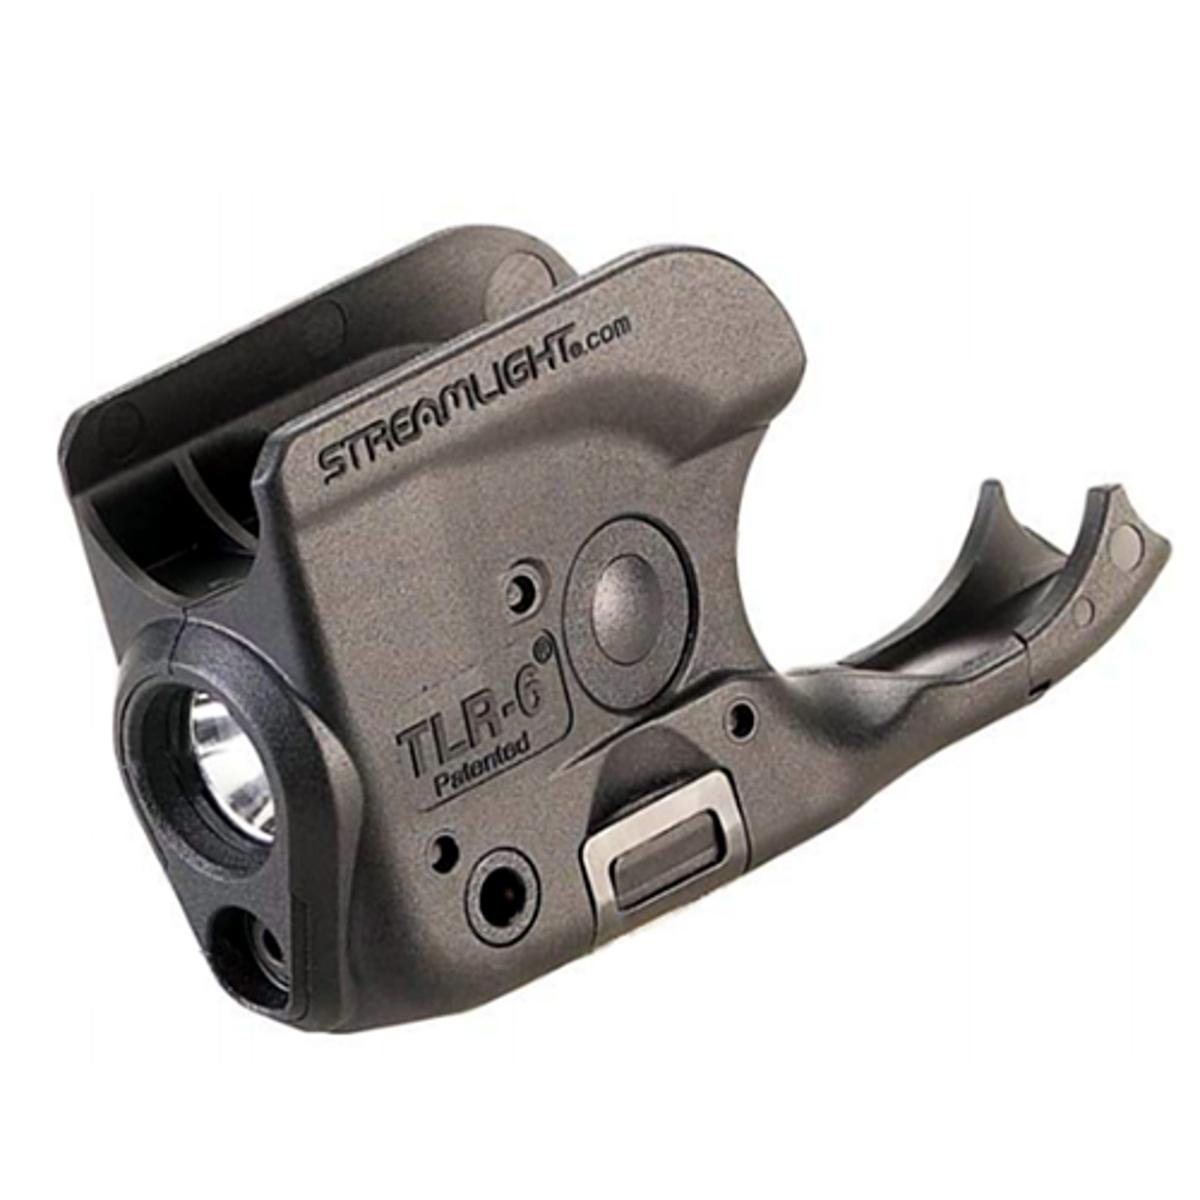 Streamlight Tlr 6 Rail And Trigger Guard Laser Light Combo